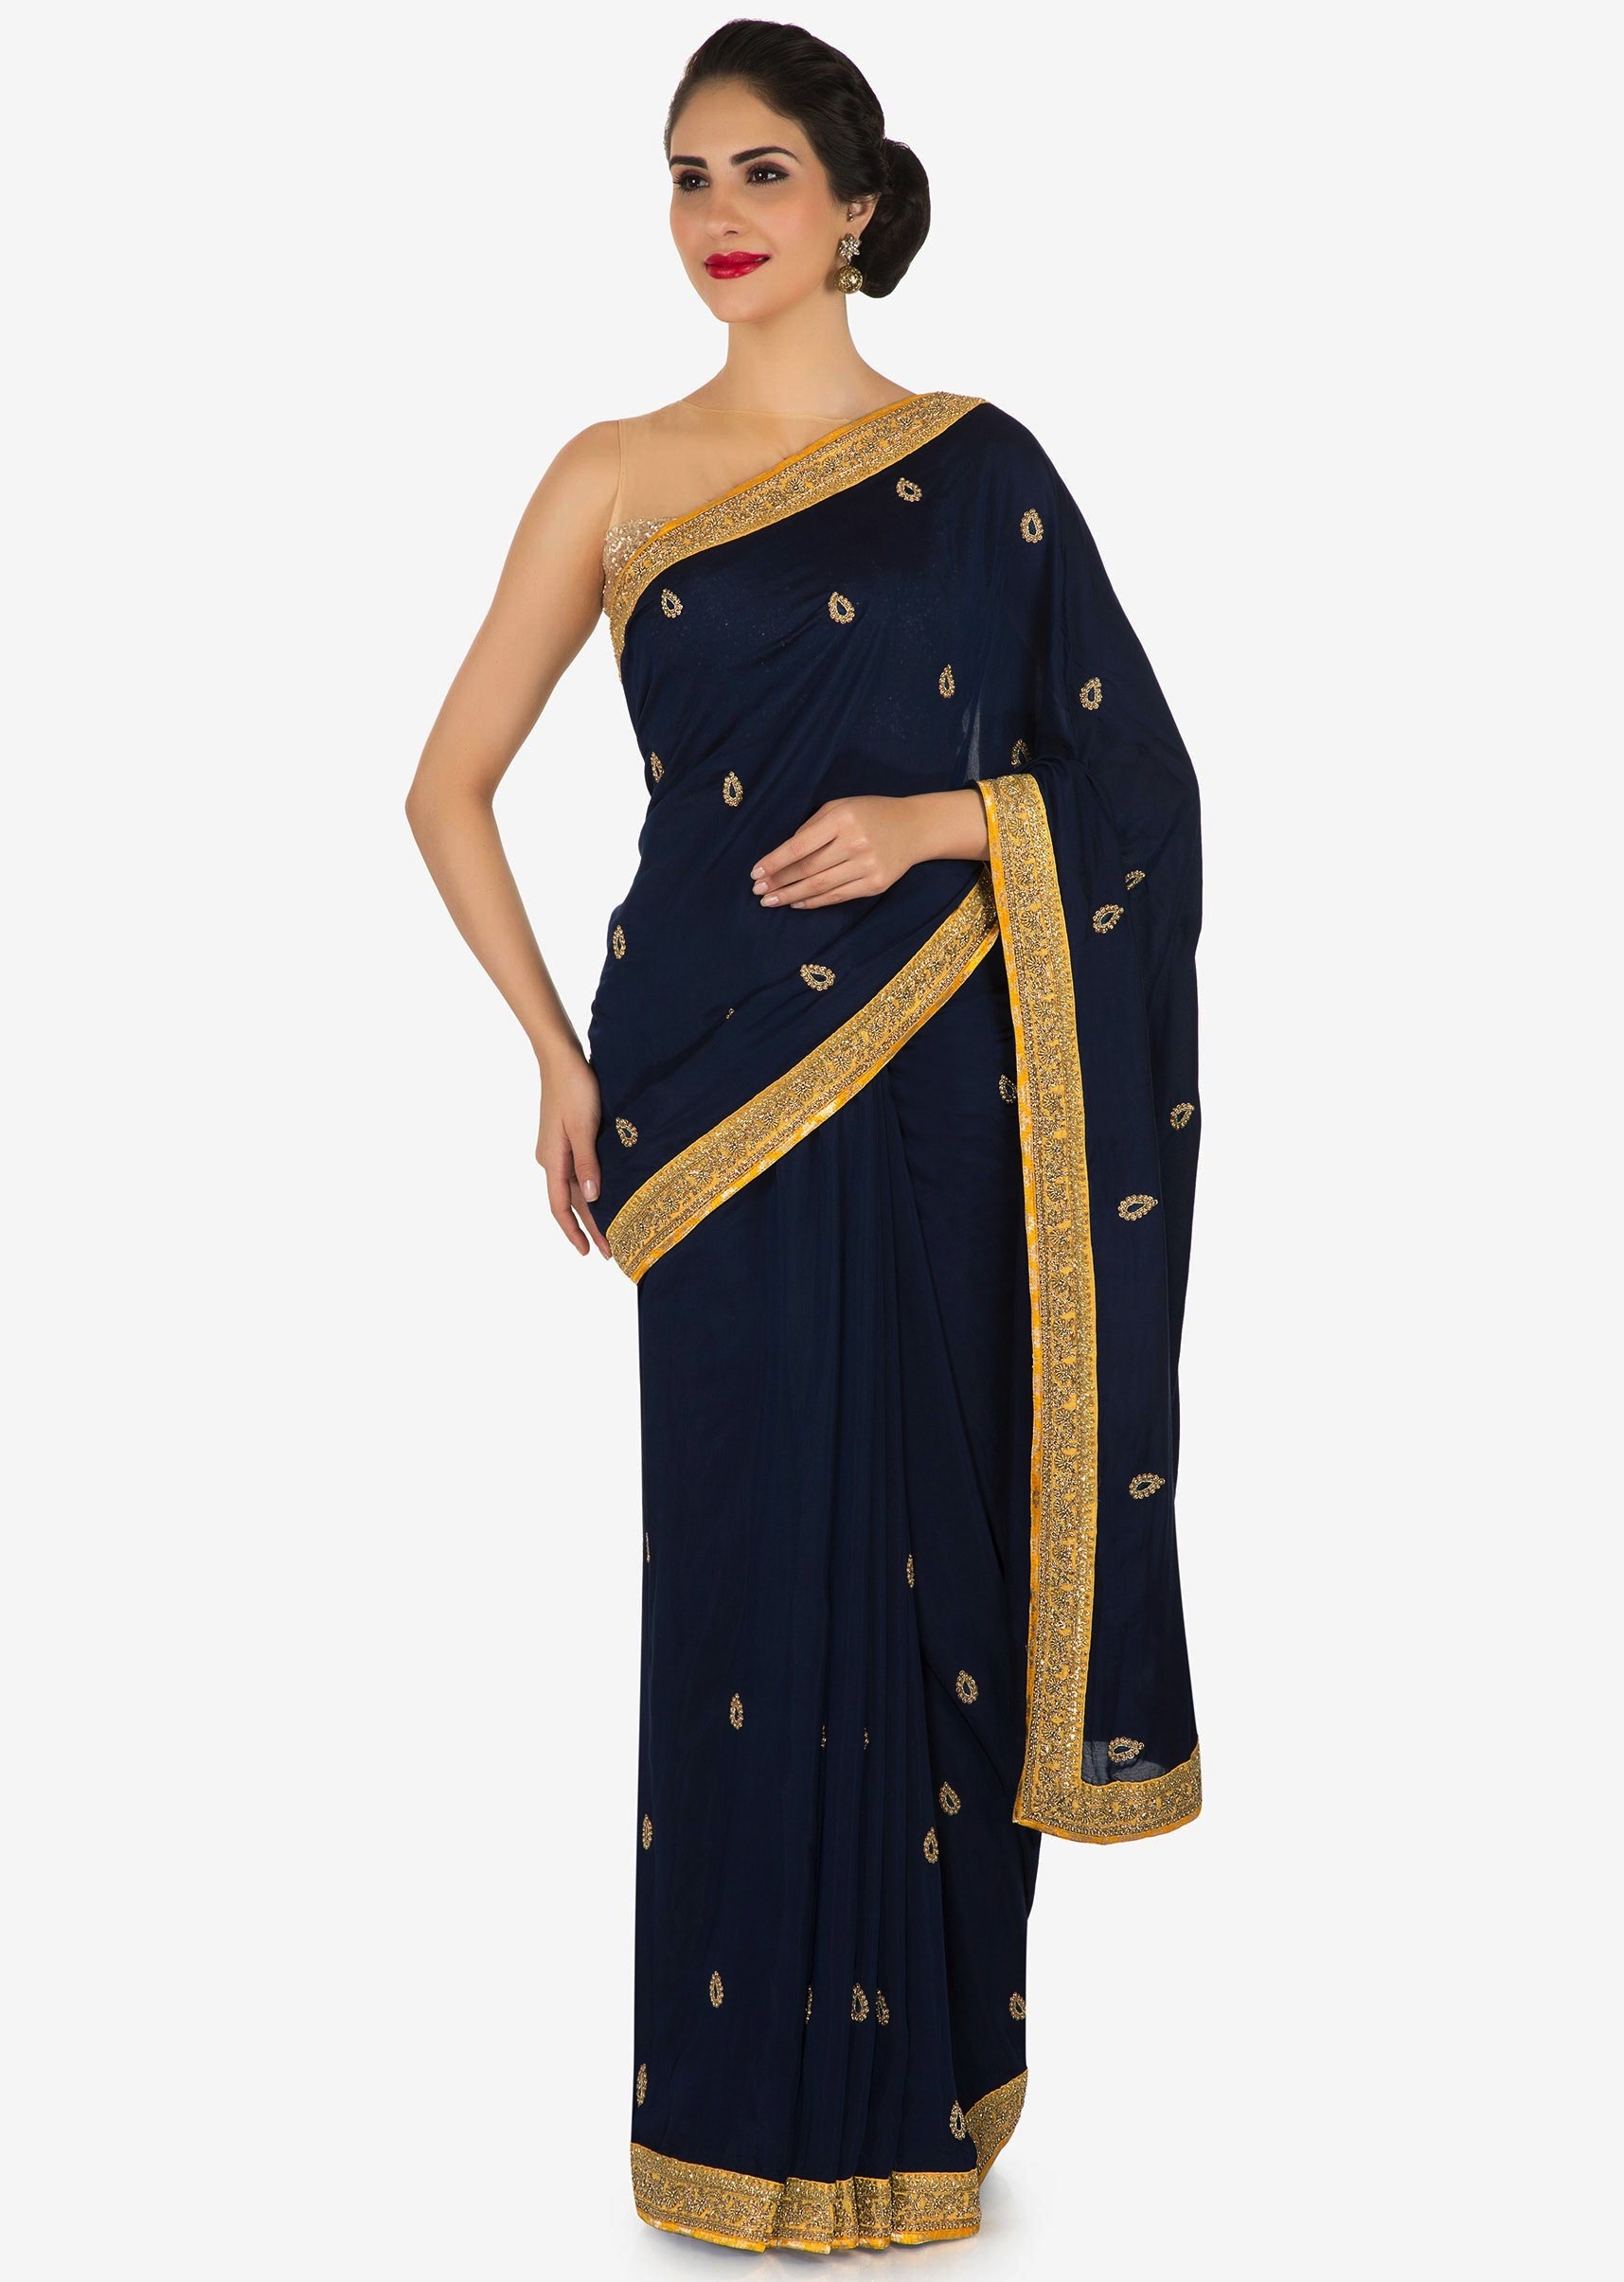 ebc01e0a0c Navy blue saree in moti and zardosi butti along with contrast border only  on KalkiMore Detail